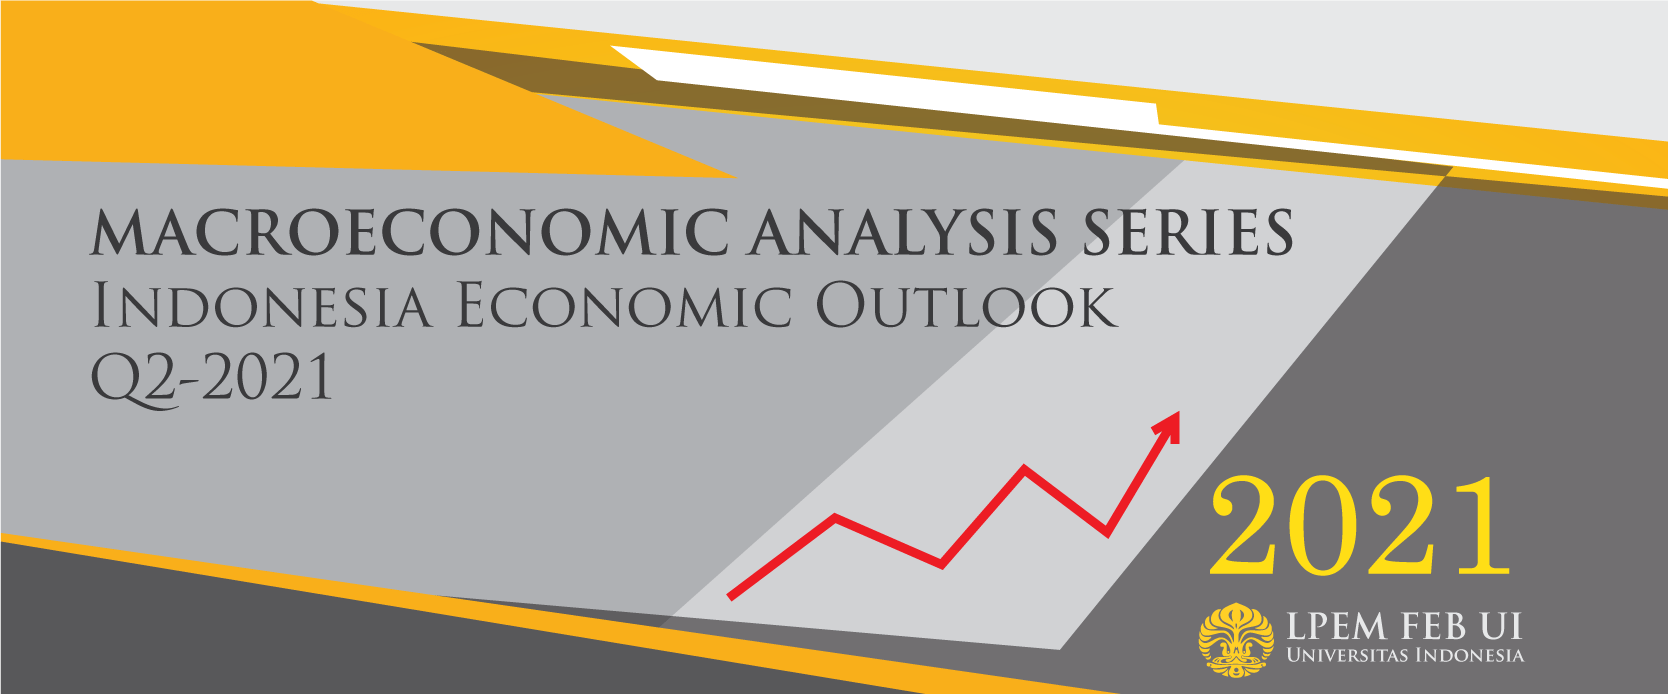 Macroeconomics Analysis Series: Indonesia Economic Outlook, Q2-2021